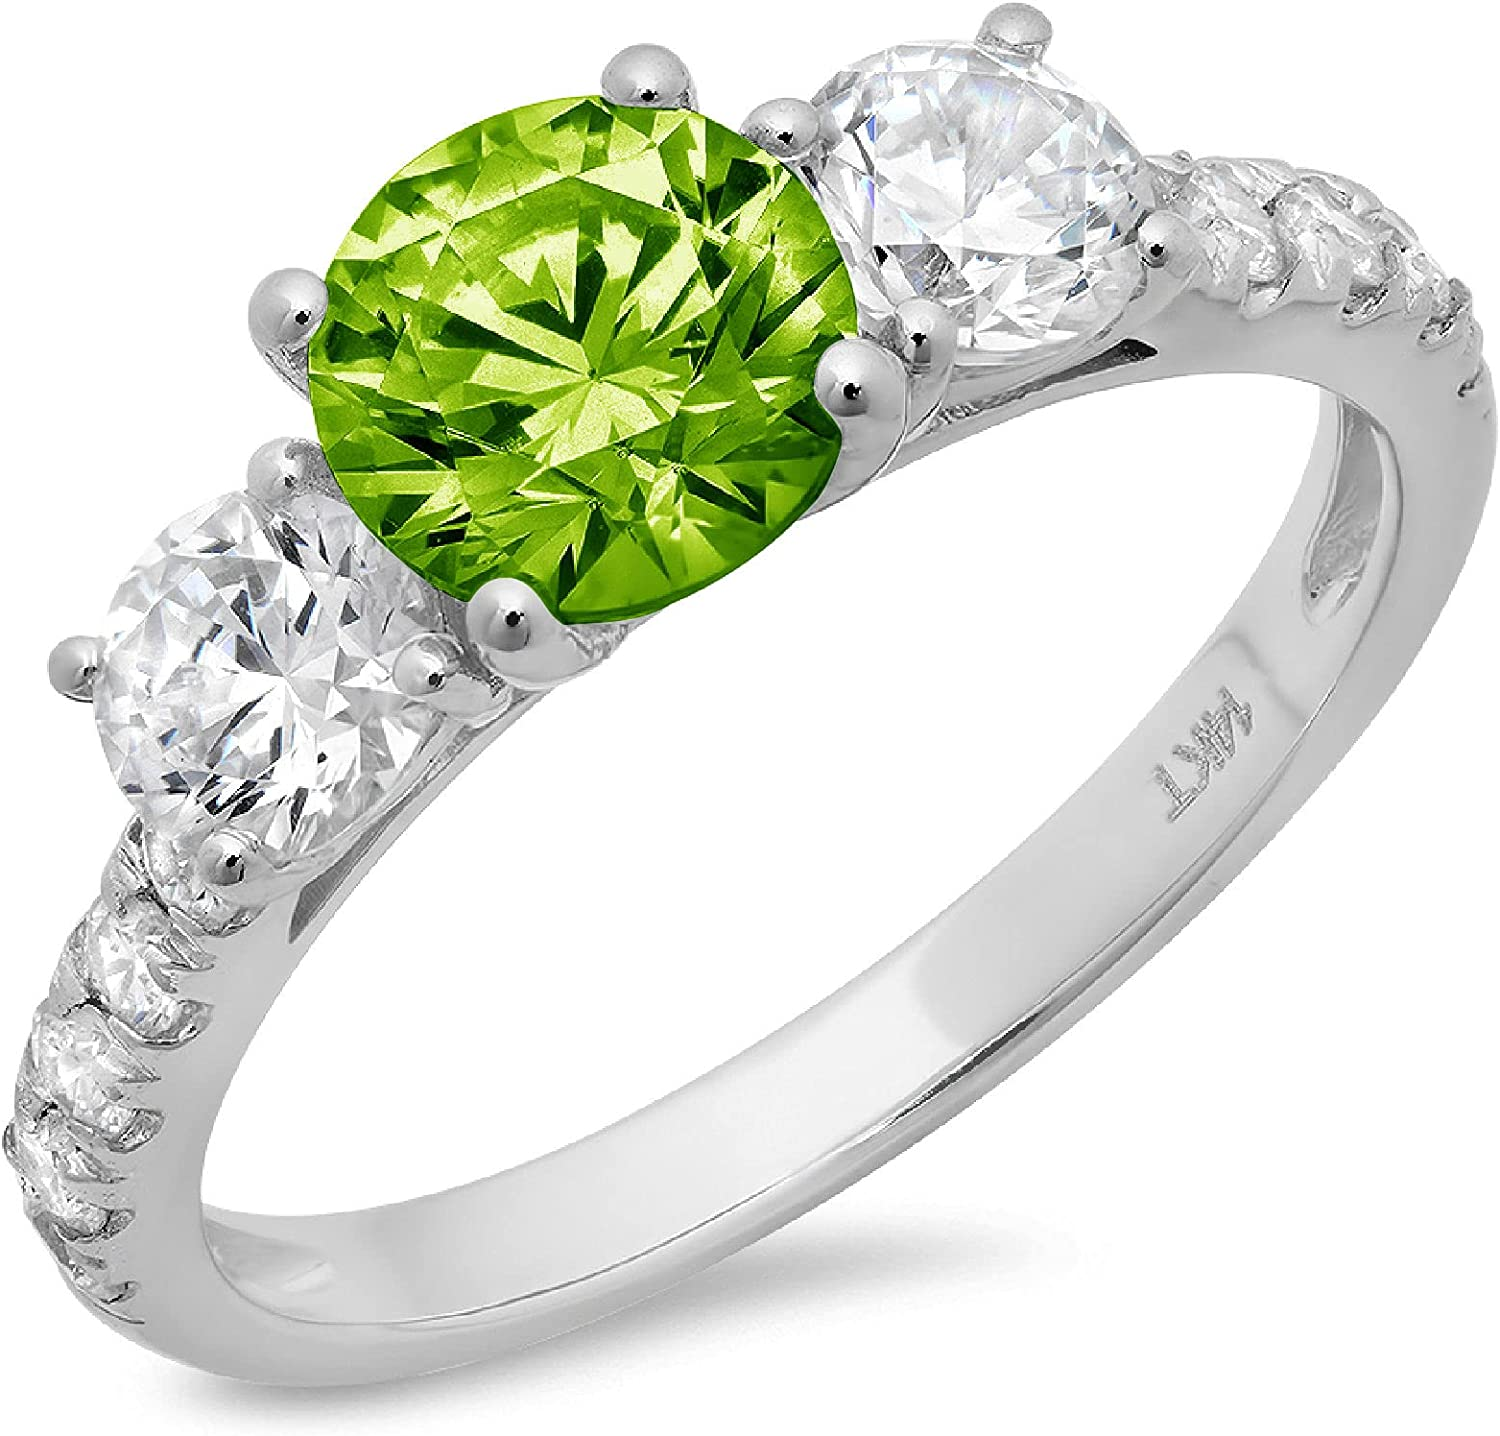 2 ct Brilliant Round Cut Solitaire 3 stone Accent Genuine Flawless Natural Green Peridot Gemstone Engagement Promise Statement Anniversary Bridal Wedding Ring Solid 18K White Gold